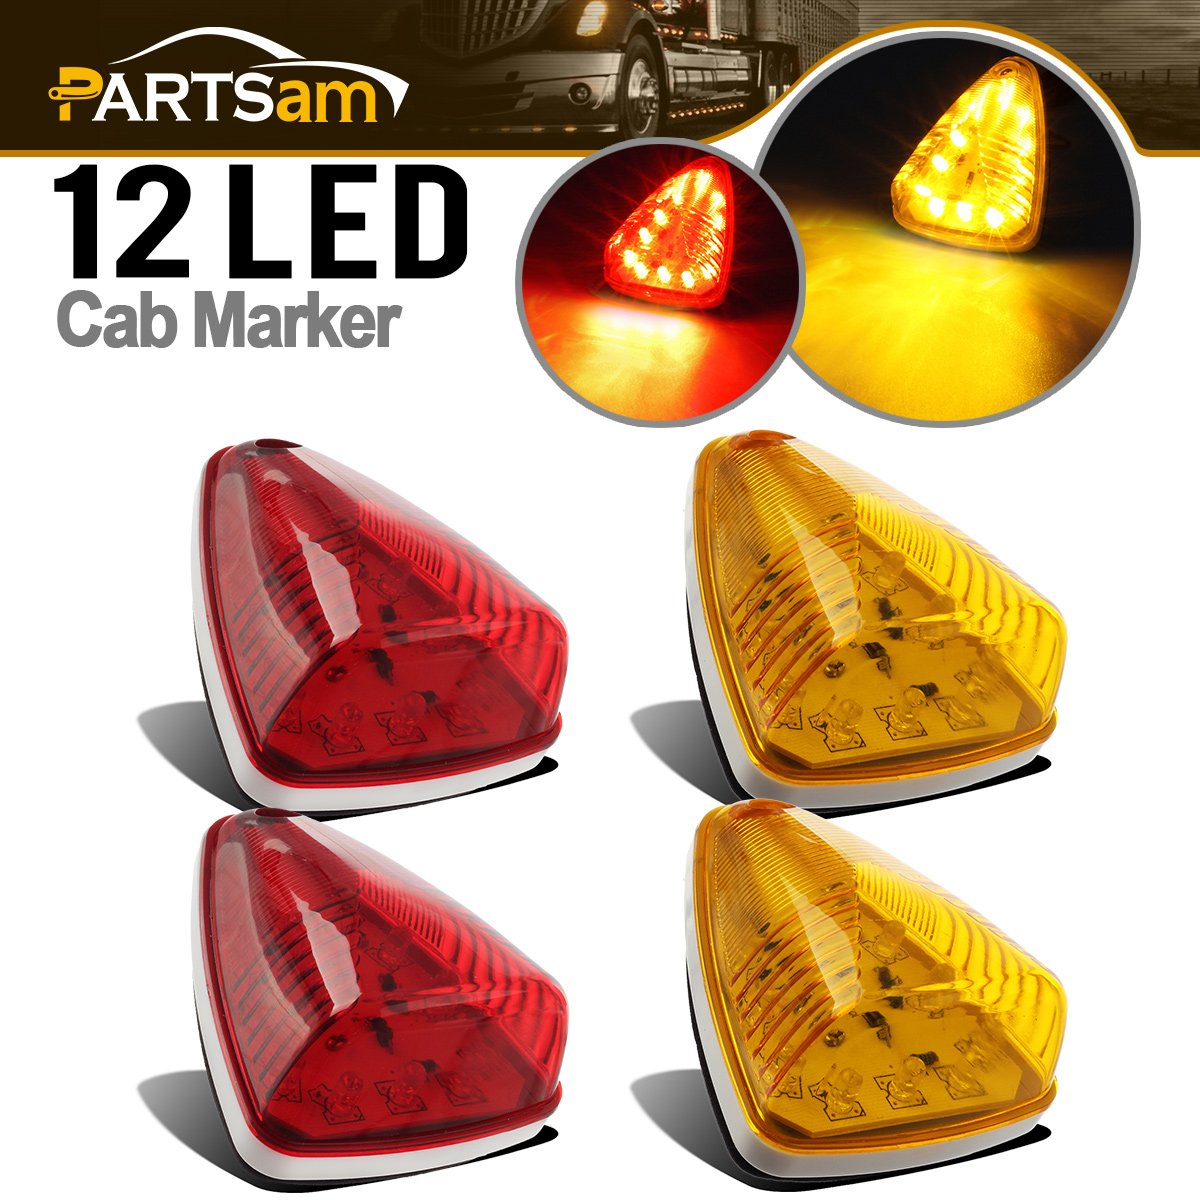 Partsam 2xRed+2xAmber 12LED Car Truck Bus RV Cab Marker Clearance Lights Assembly M20311